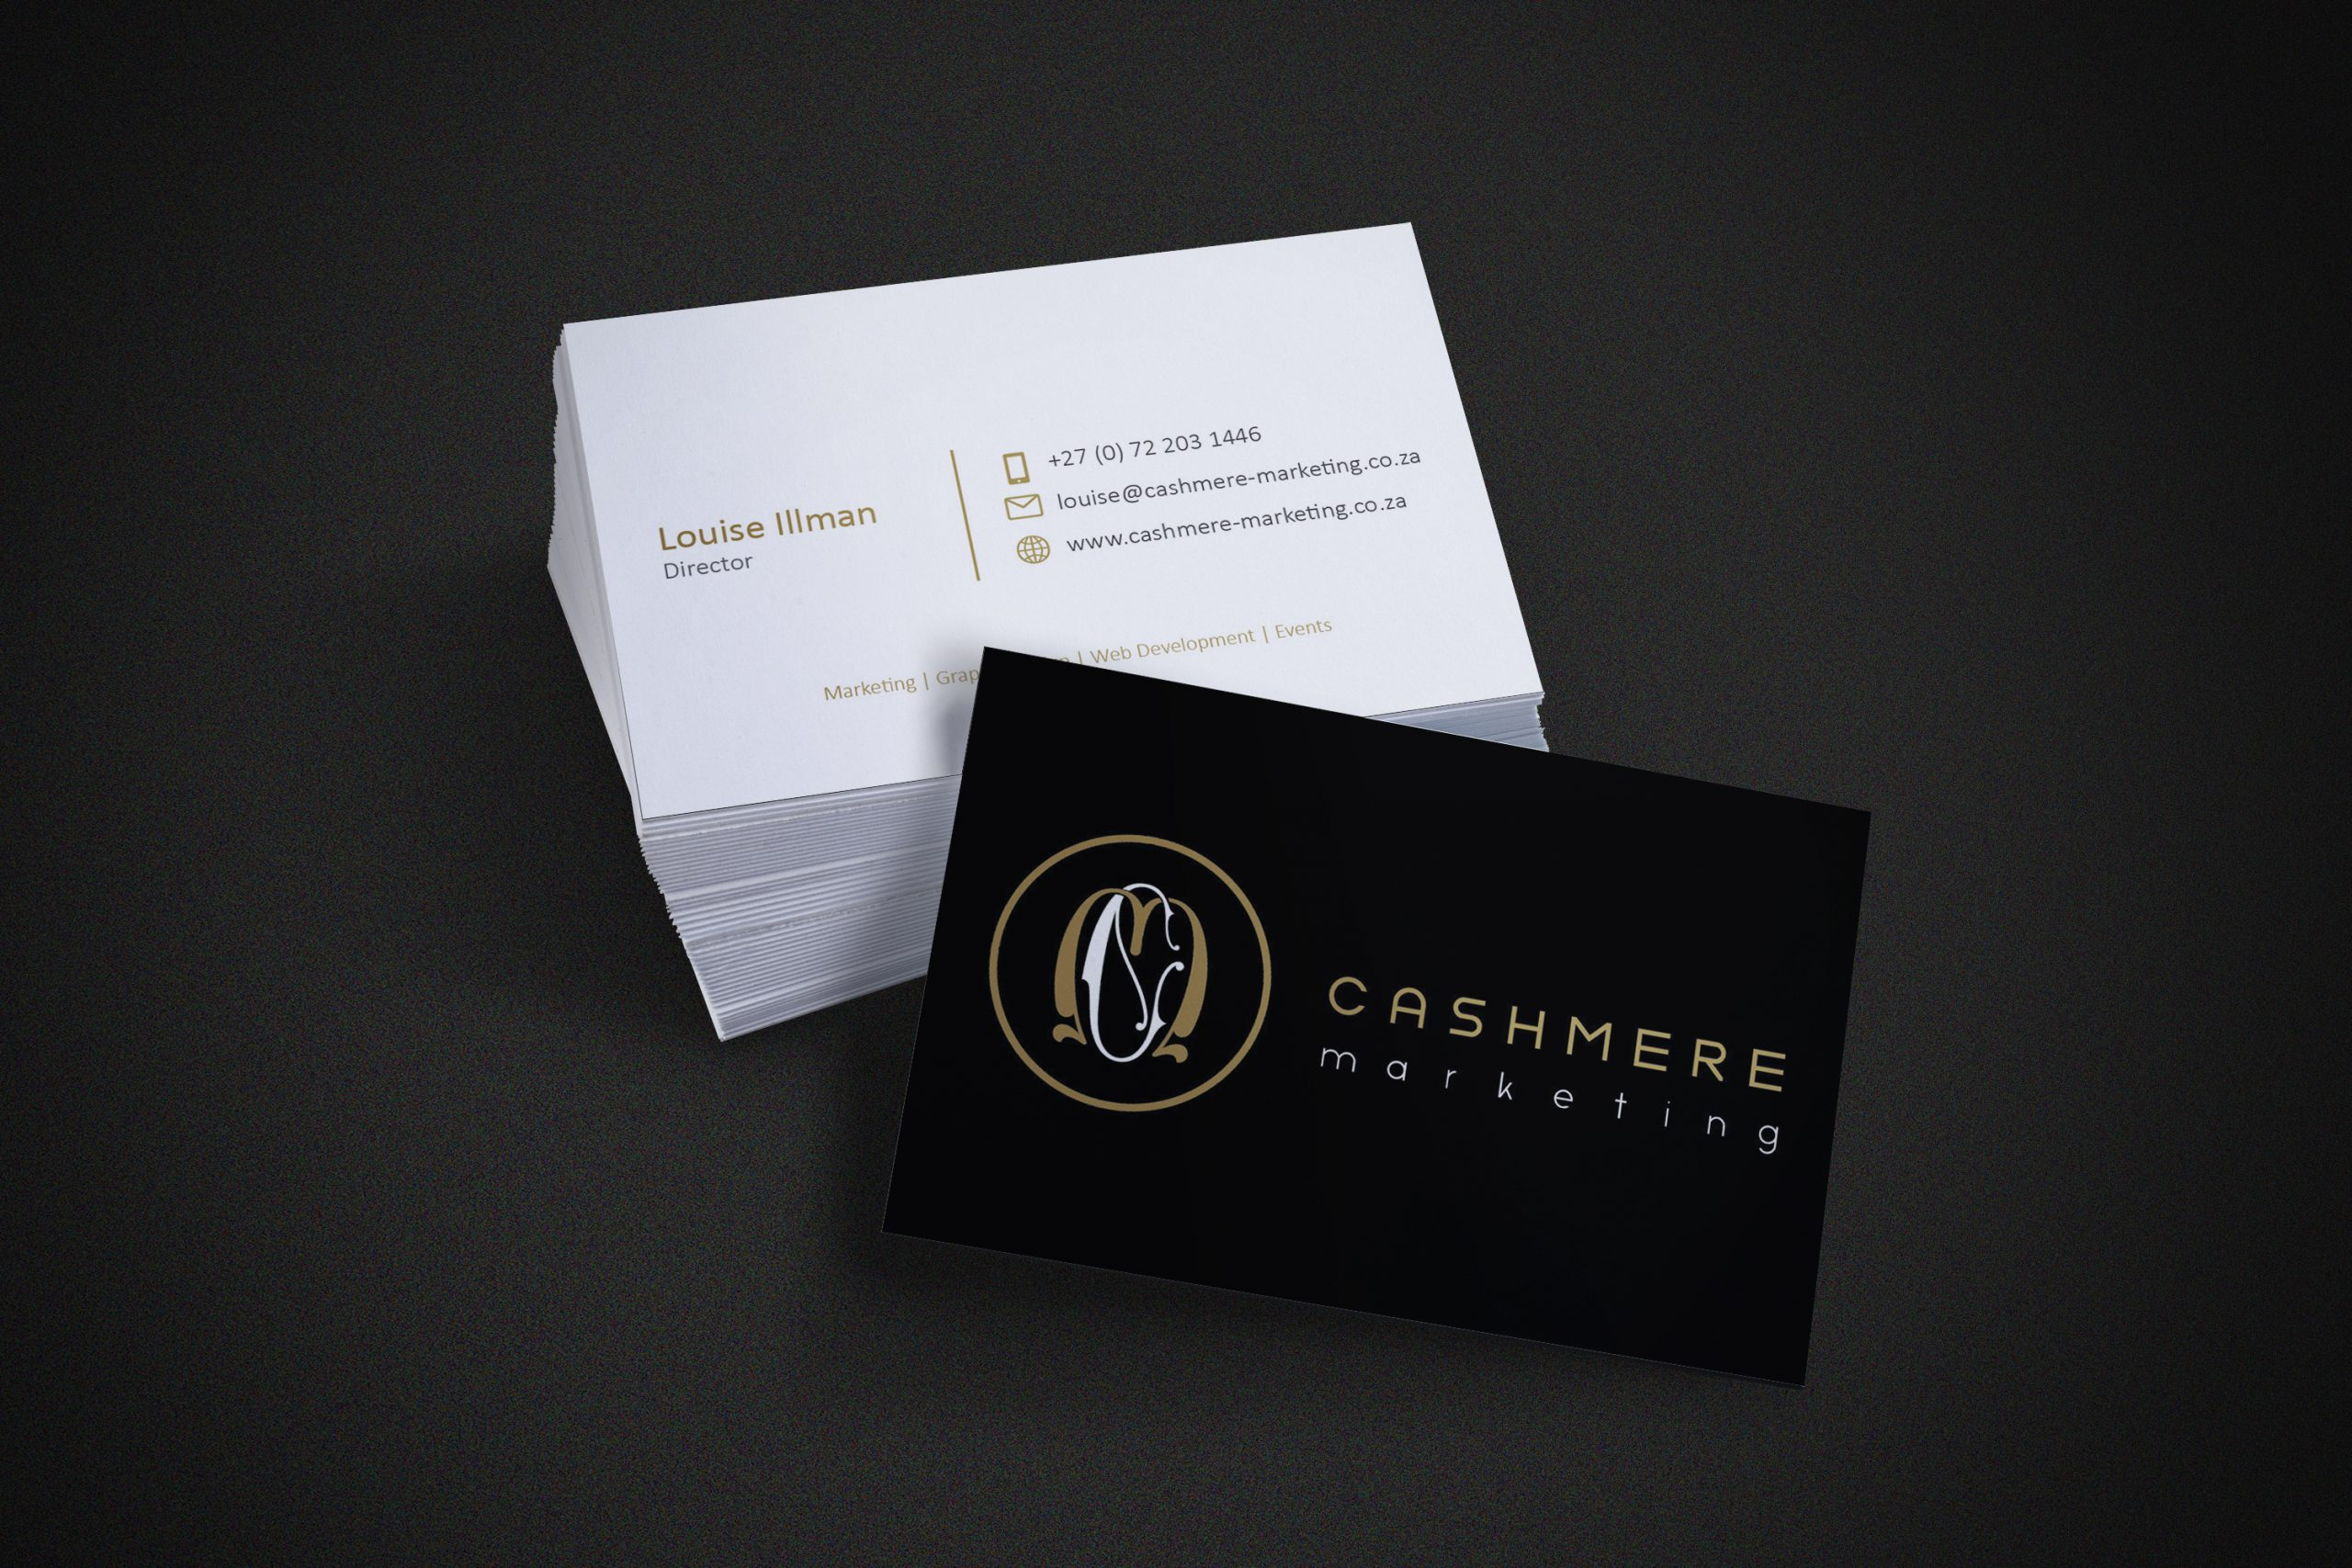 Cashmere Marketing are expert specialists in creative brand marketing and development.